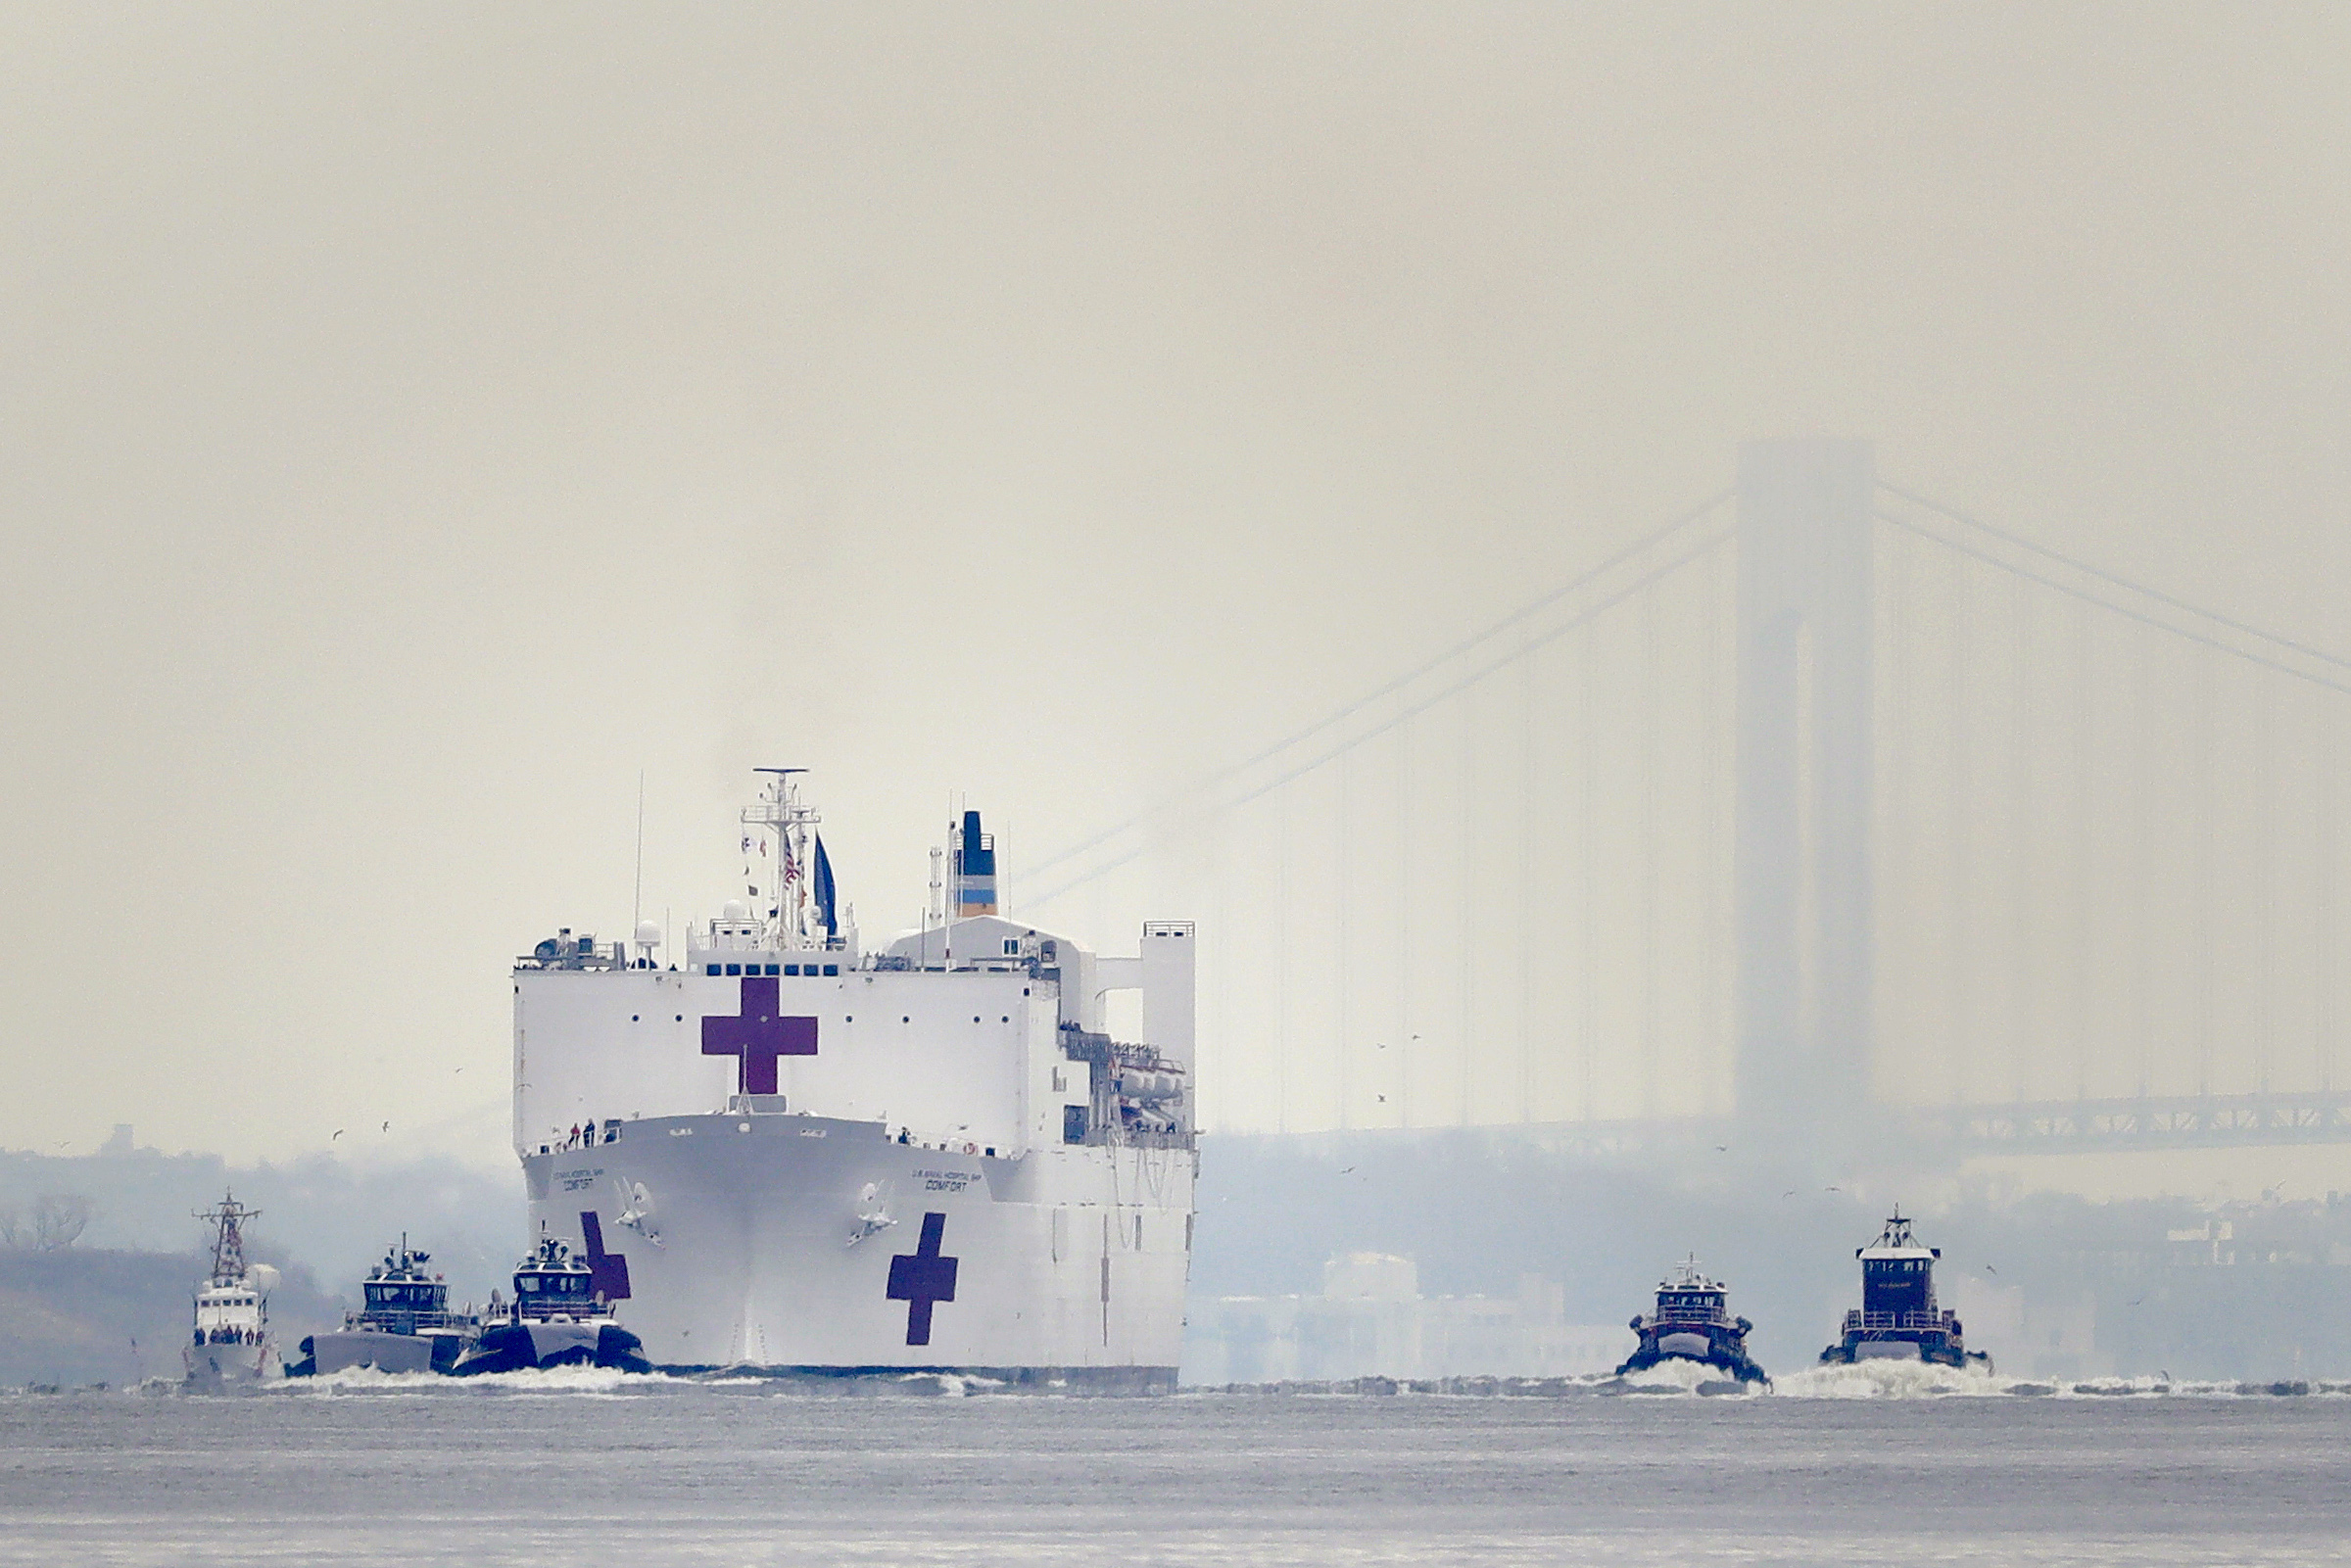 The Navy hospital ship USNS Comfort arrives in New York, on March 30, 2020.